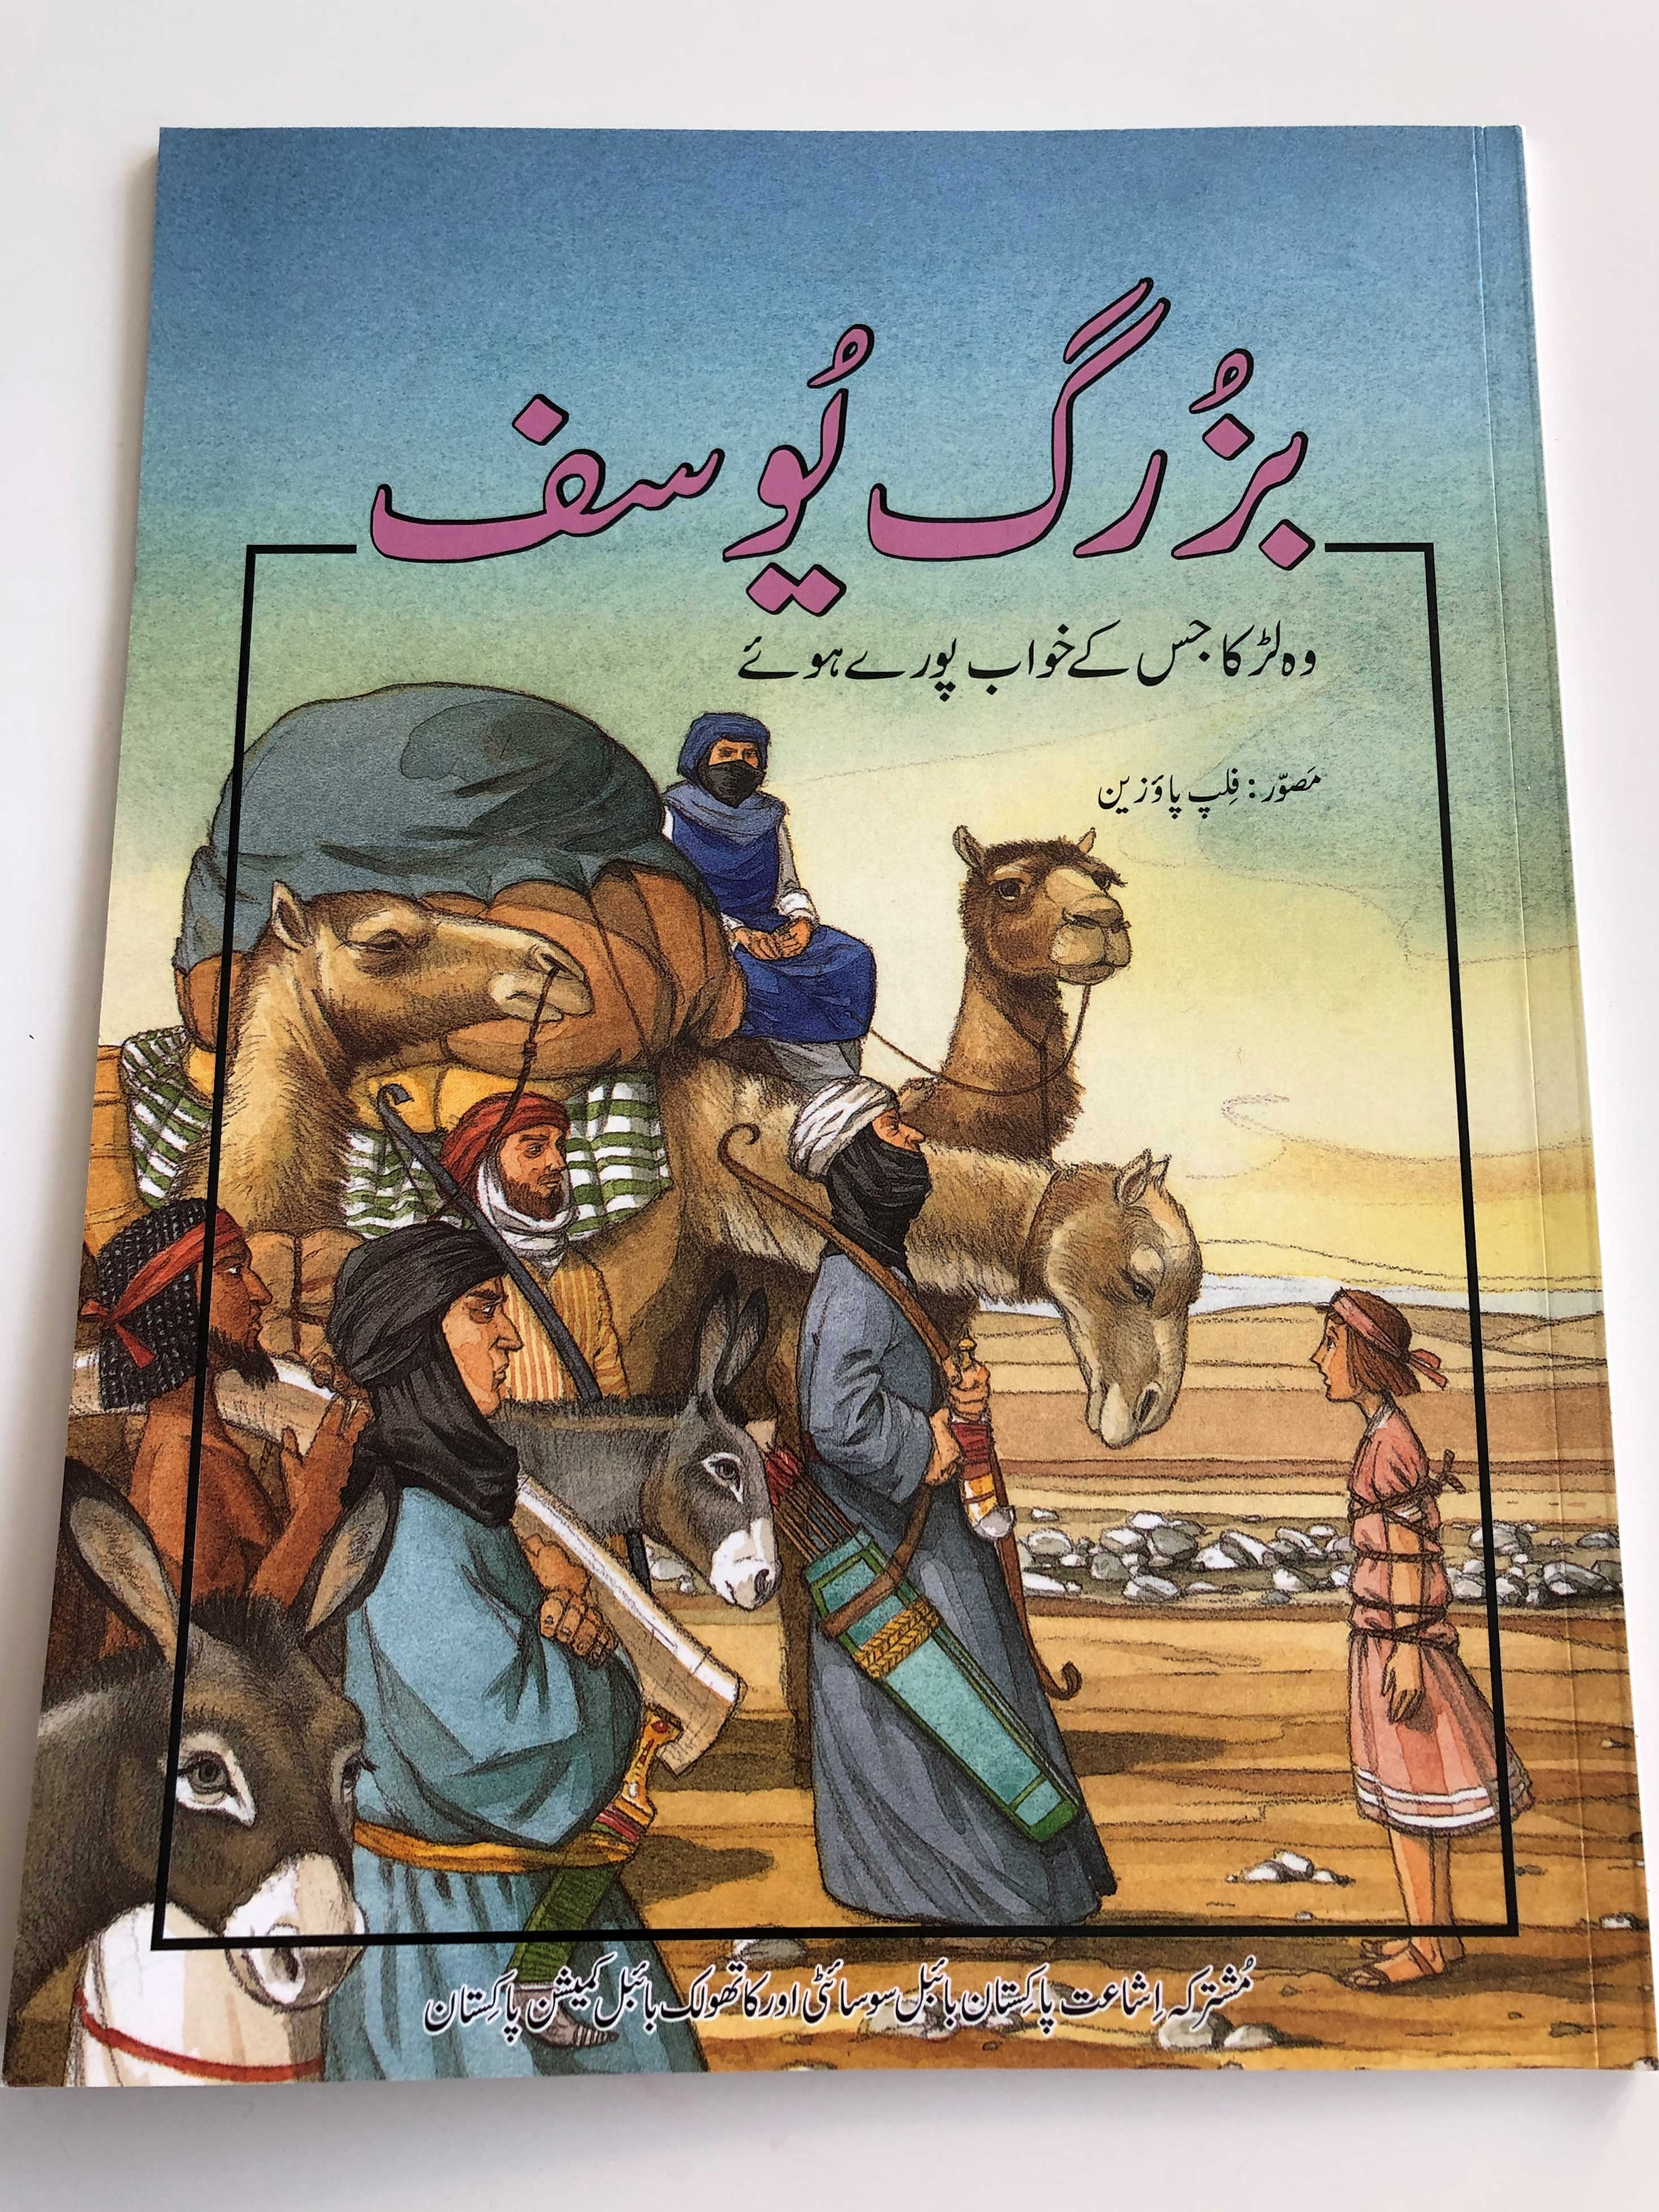 joseph-the-boy-who-learned-to-handle-his-dream-urdu-edition-1.jpg